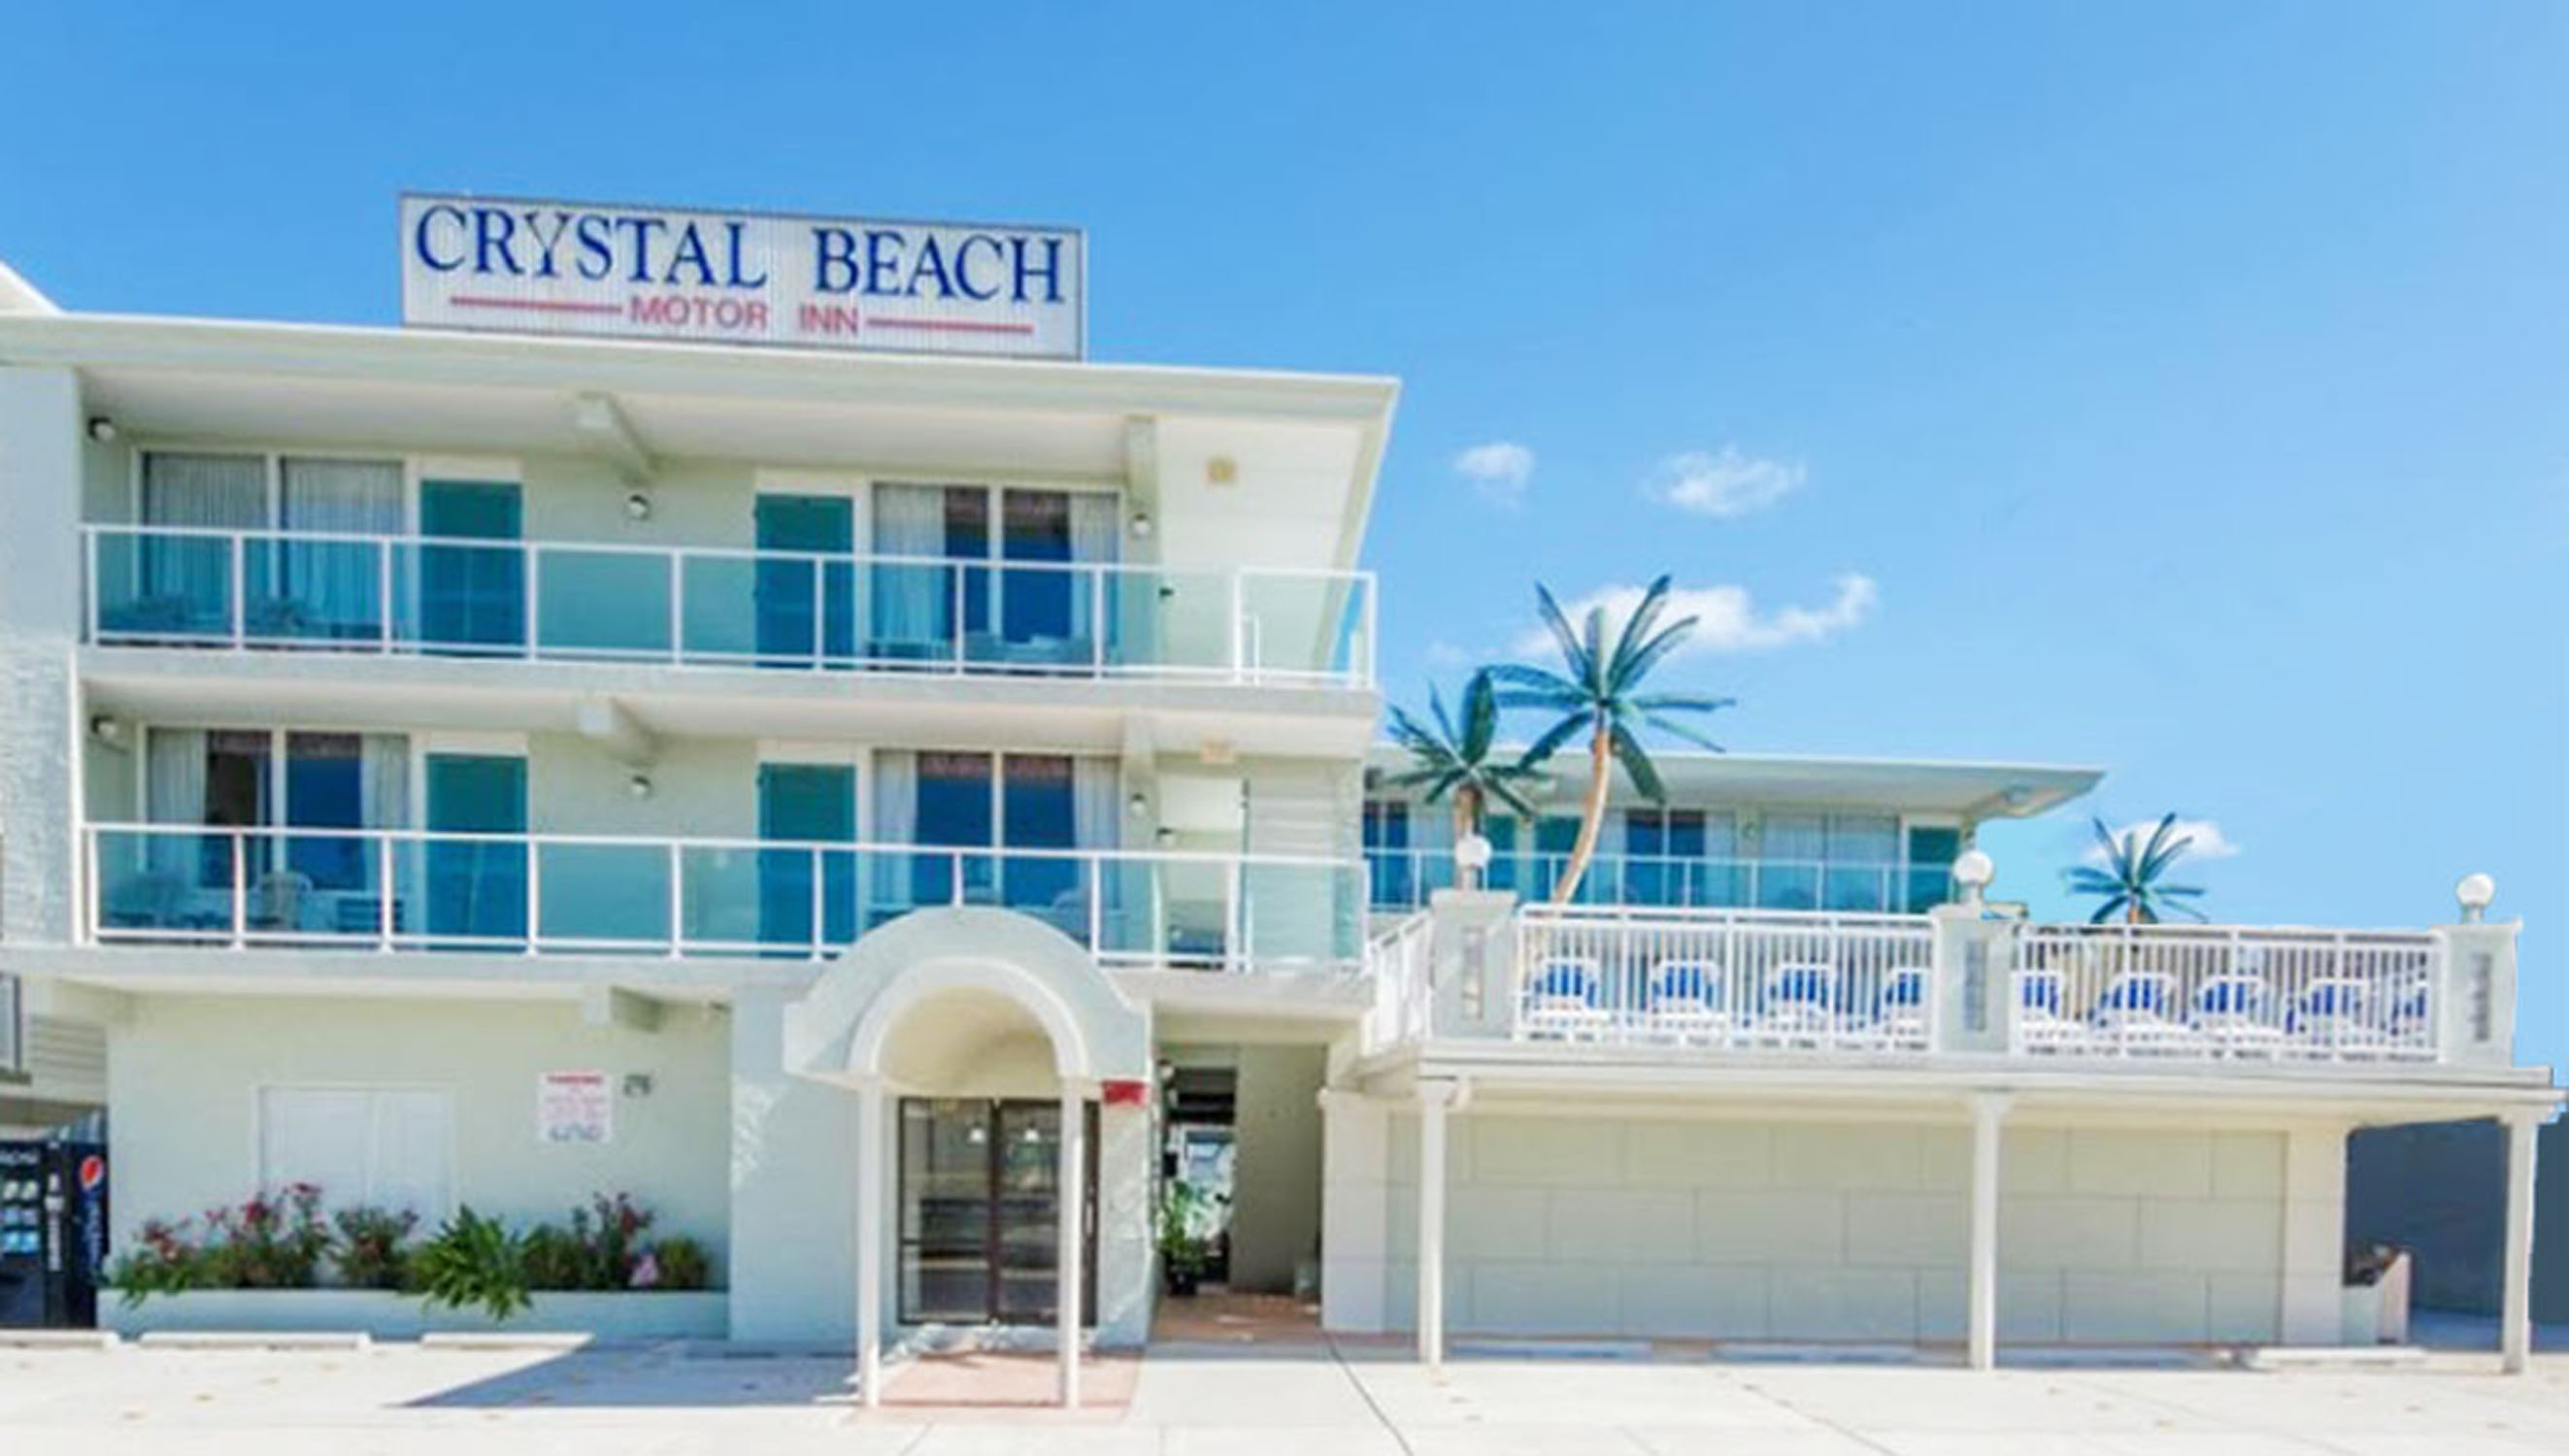 Crystal Beach Motor Inn